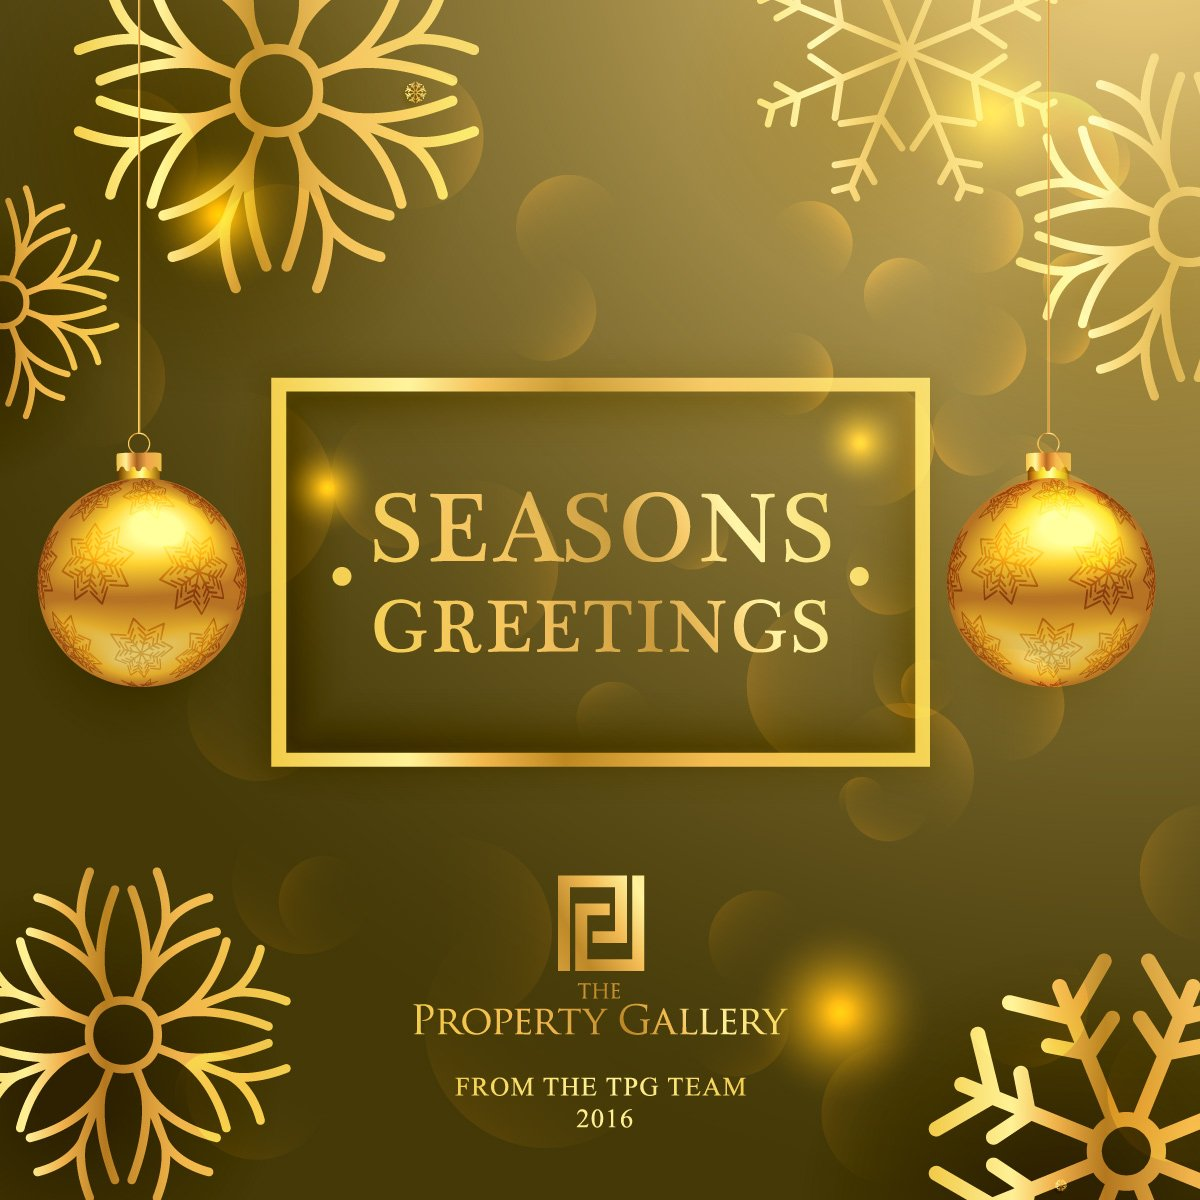 #SeasonsGreetings #HappyHolidays from the TPG Team. Wishing you & your family a joy filled & peaceful #NewYear in 2017 #Property #Australia https://t.co/bZVdp2dBY3